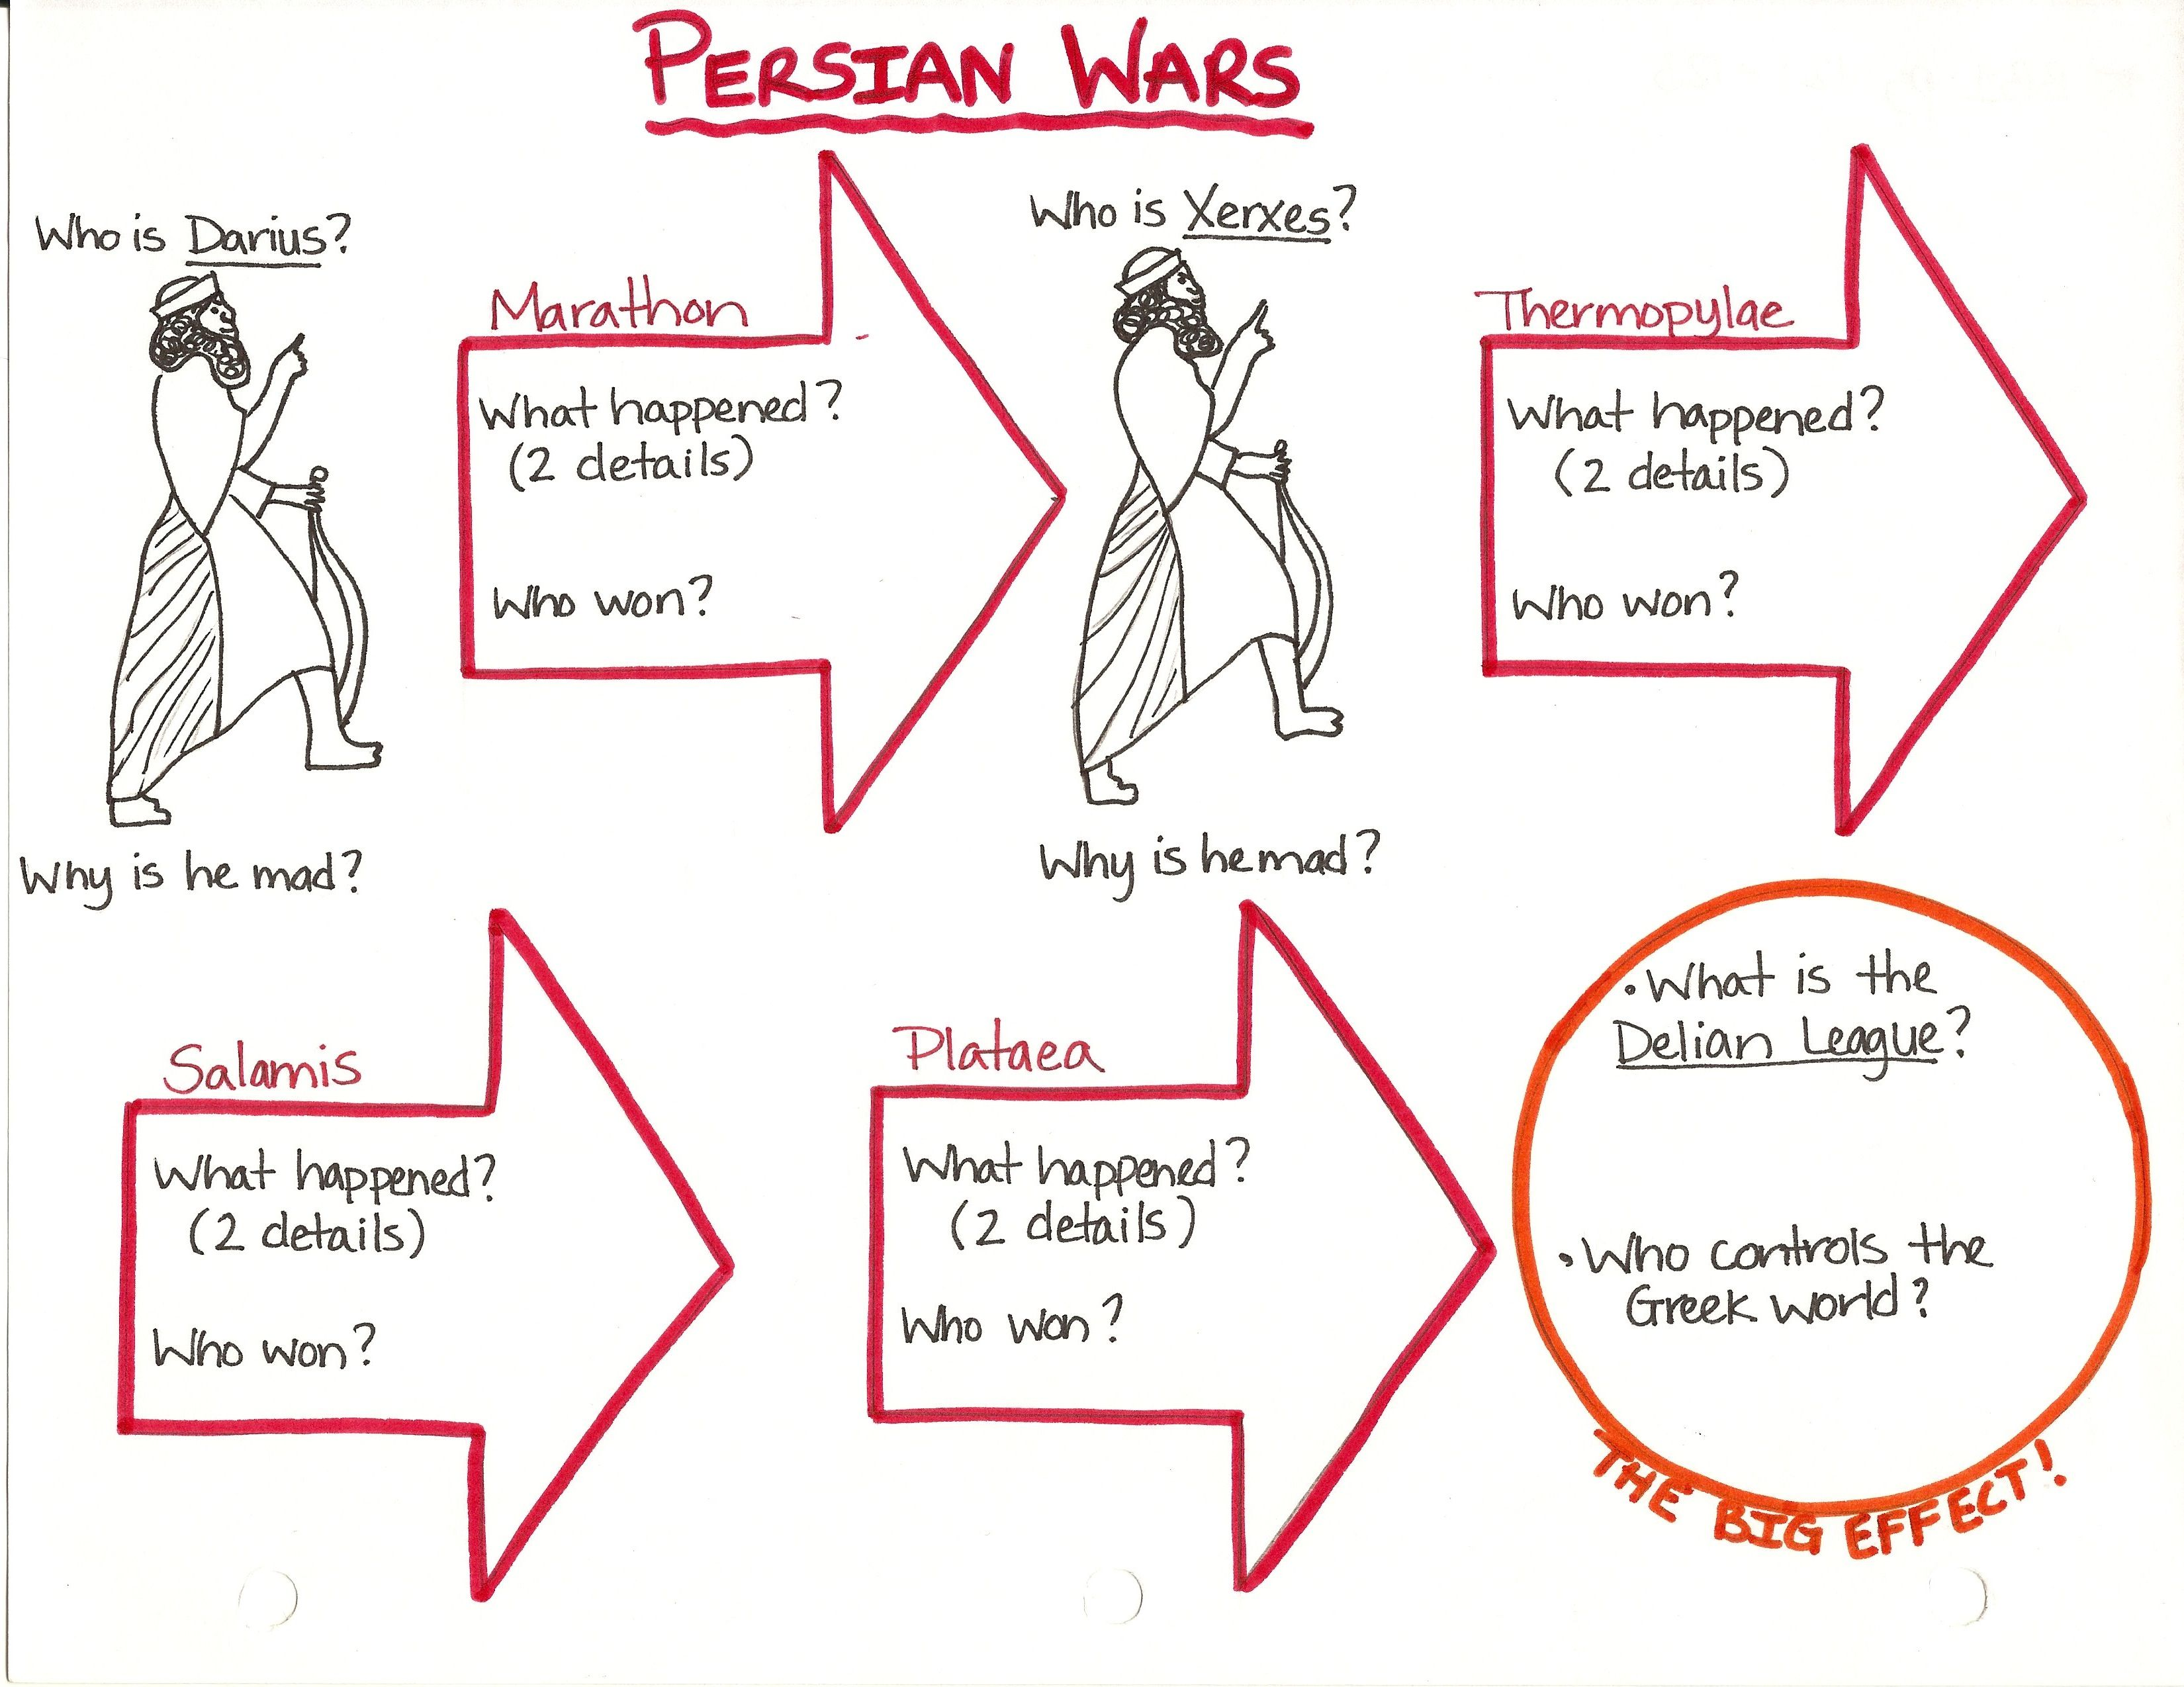 a detailed overview of the persian wars Classical studies classical studies i  the primordial defense of democracy in the persian wars,  the second half of the course entails a detailed reading and.